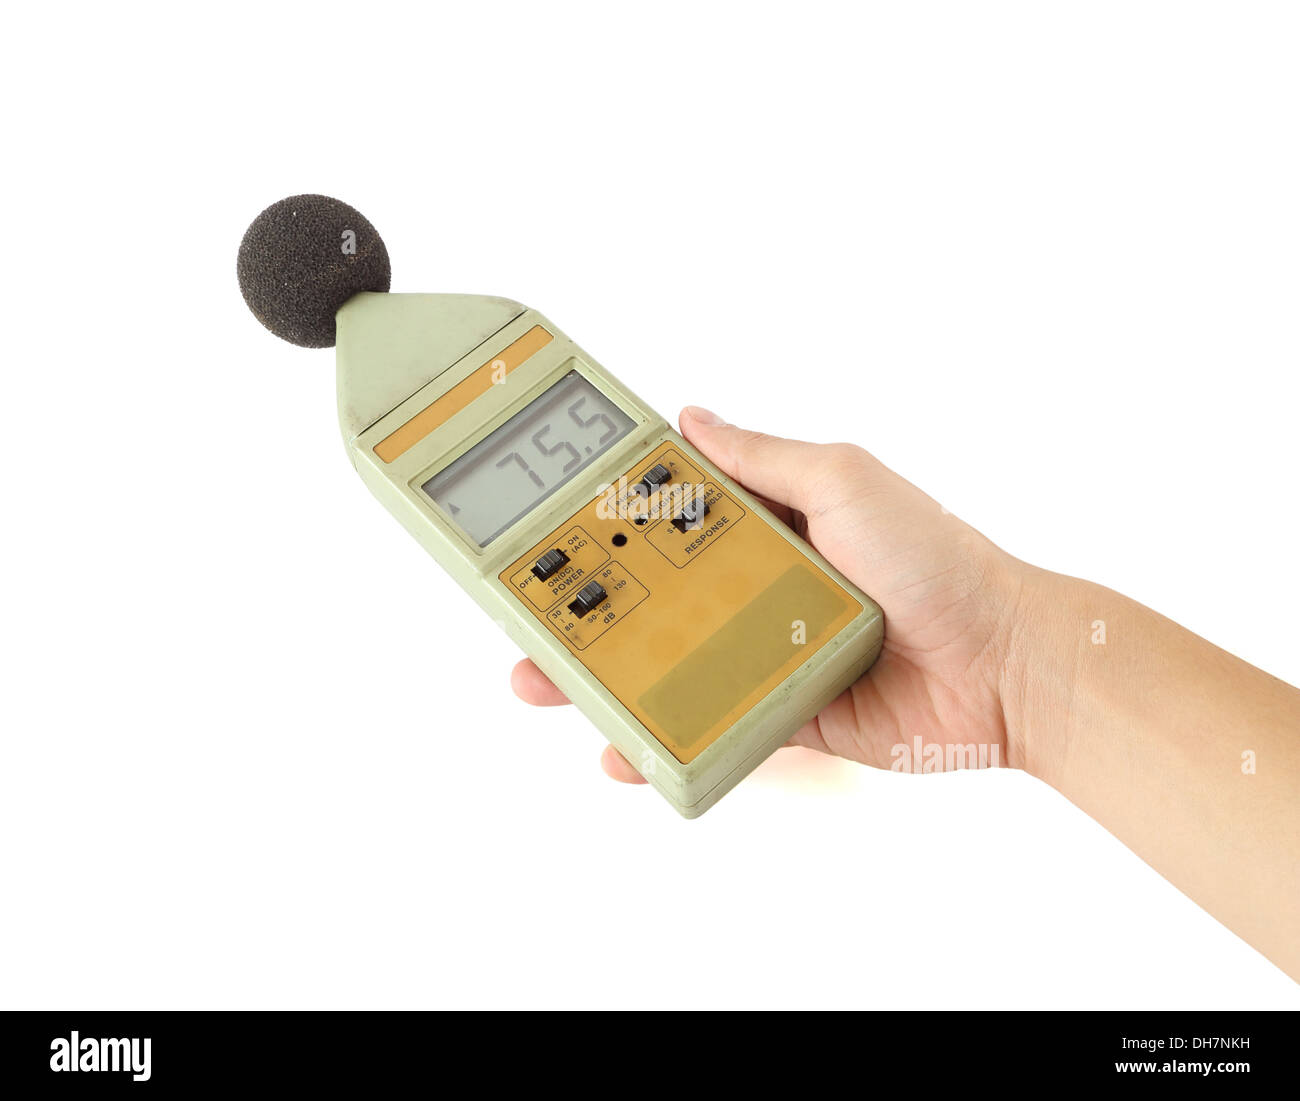 old sound level meter holding on hand Stock Photo: 62250933